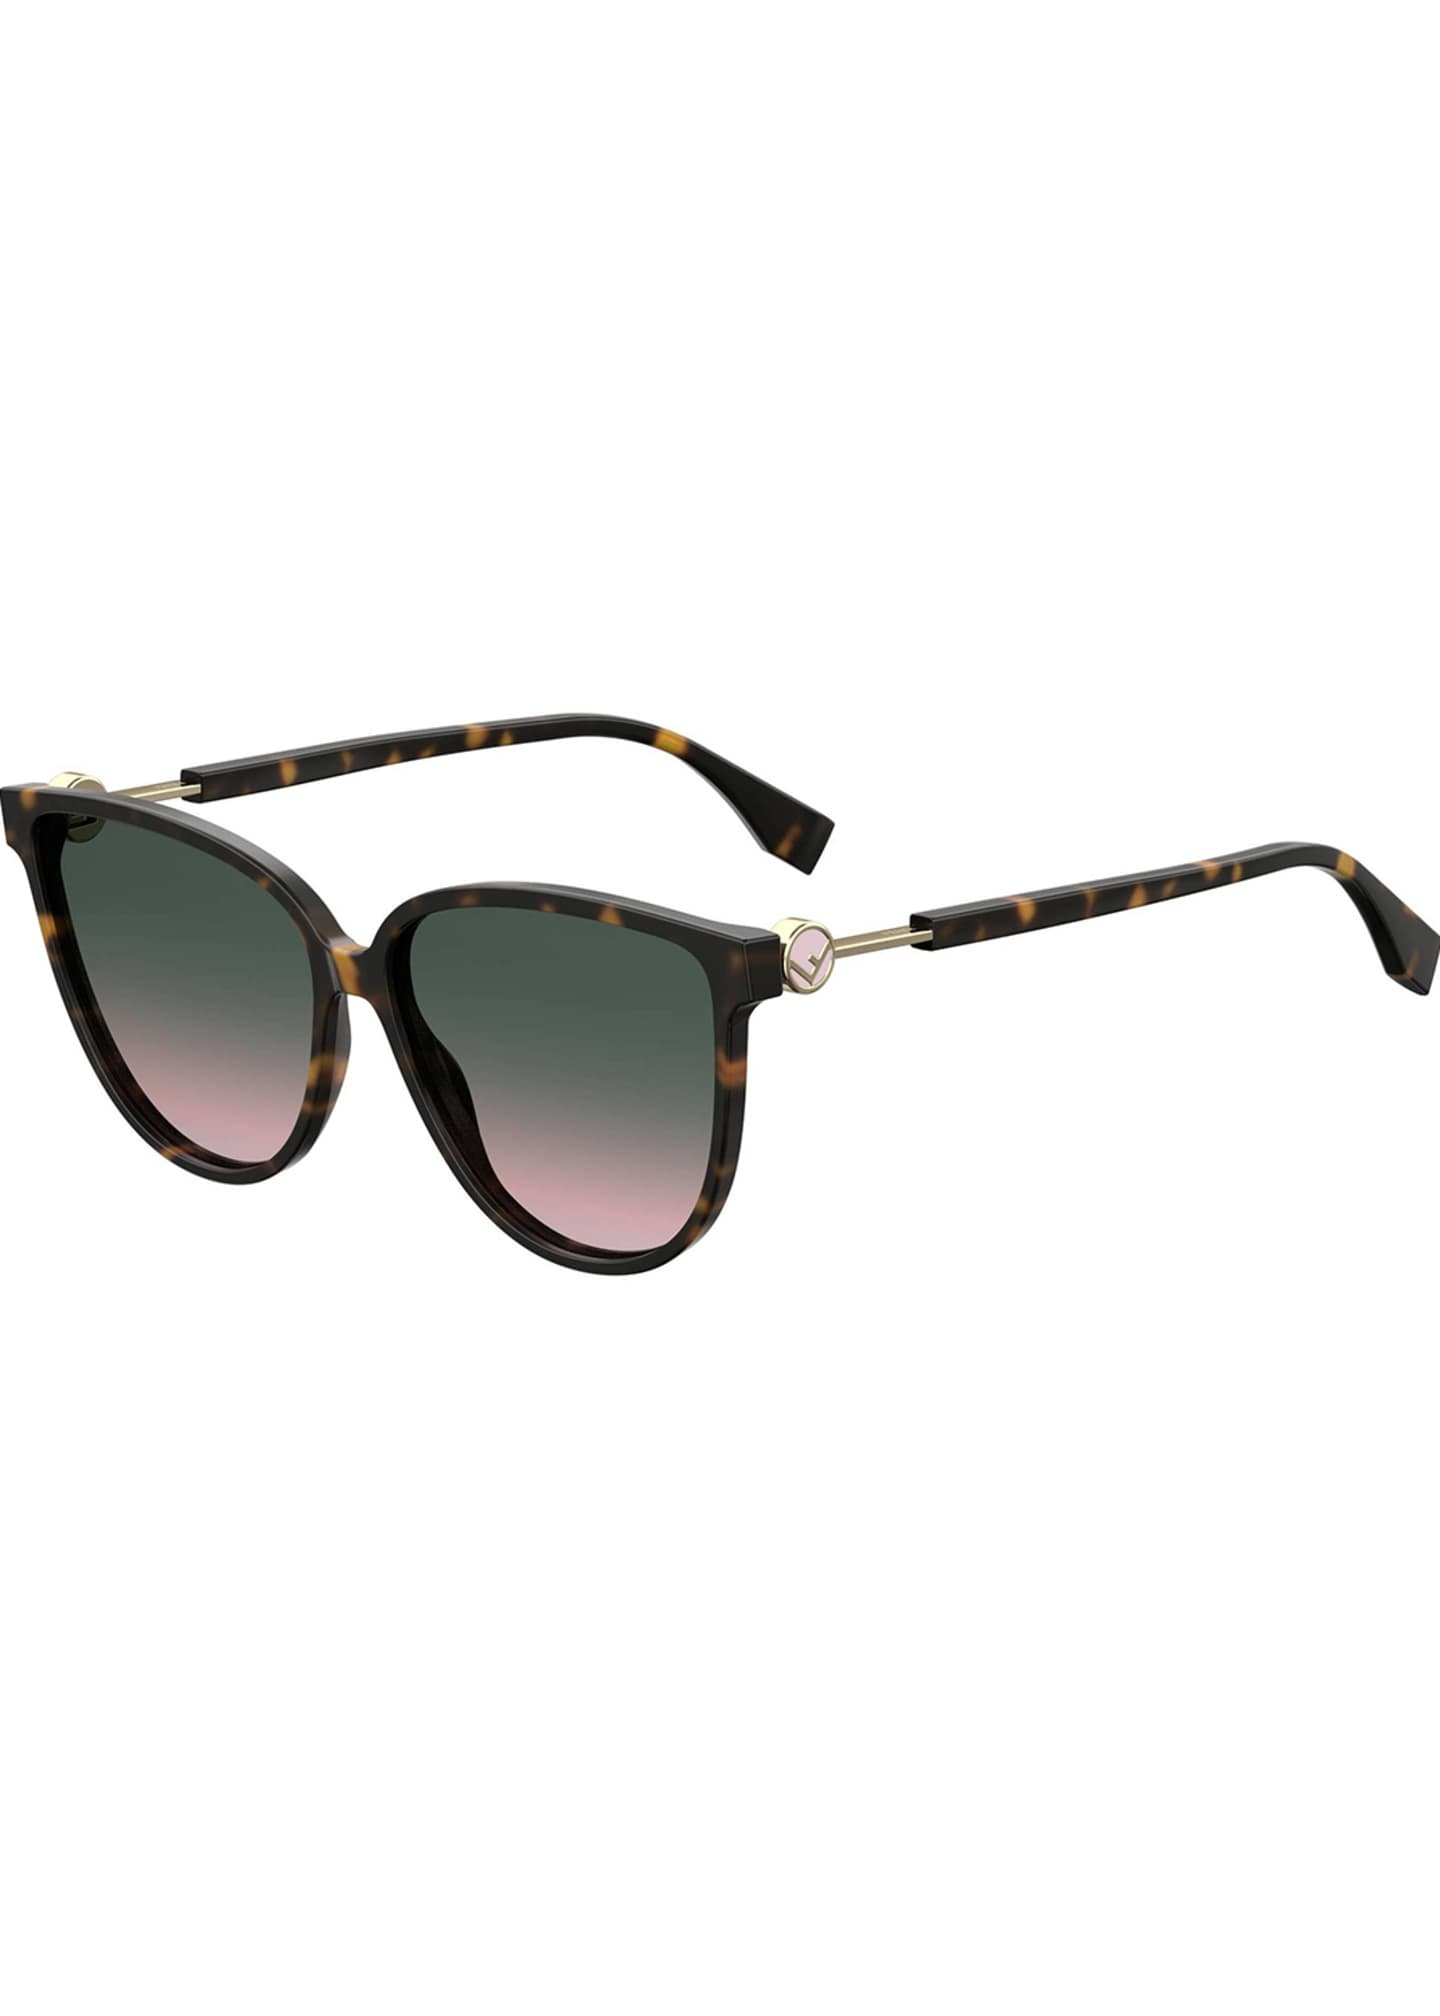 Image 1 of 1: Round Acetate & Metal Gradient Sunglasses